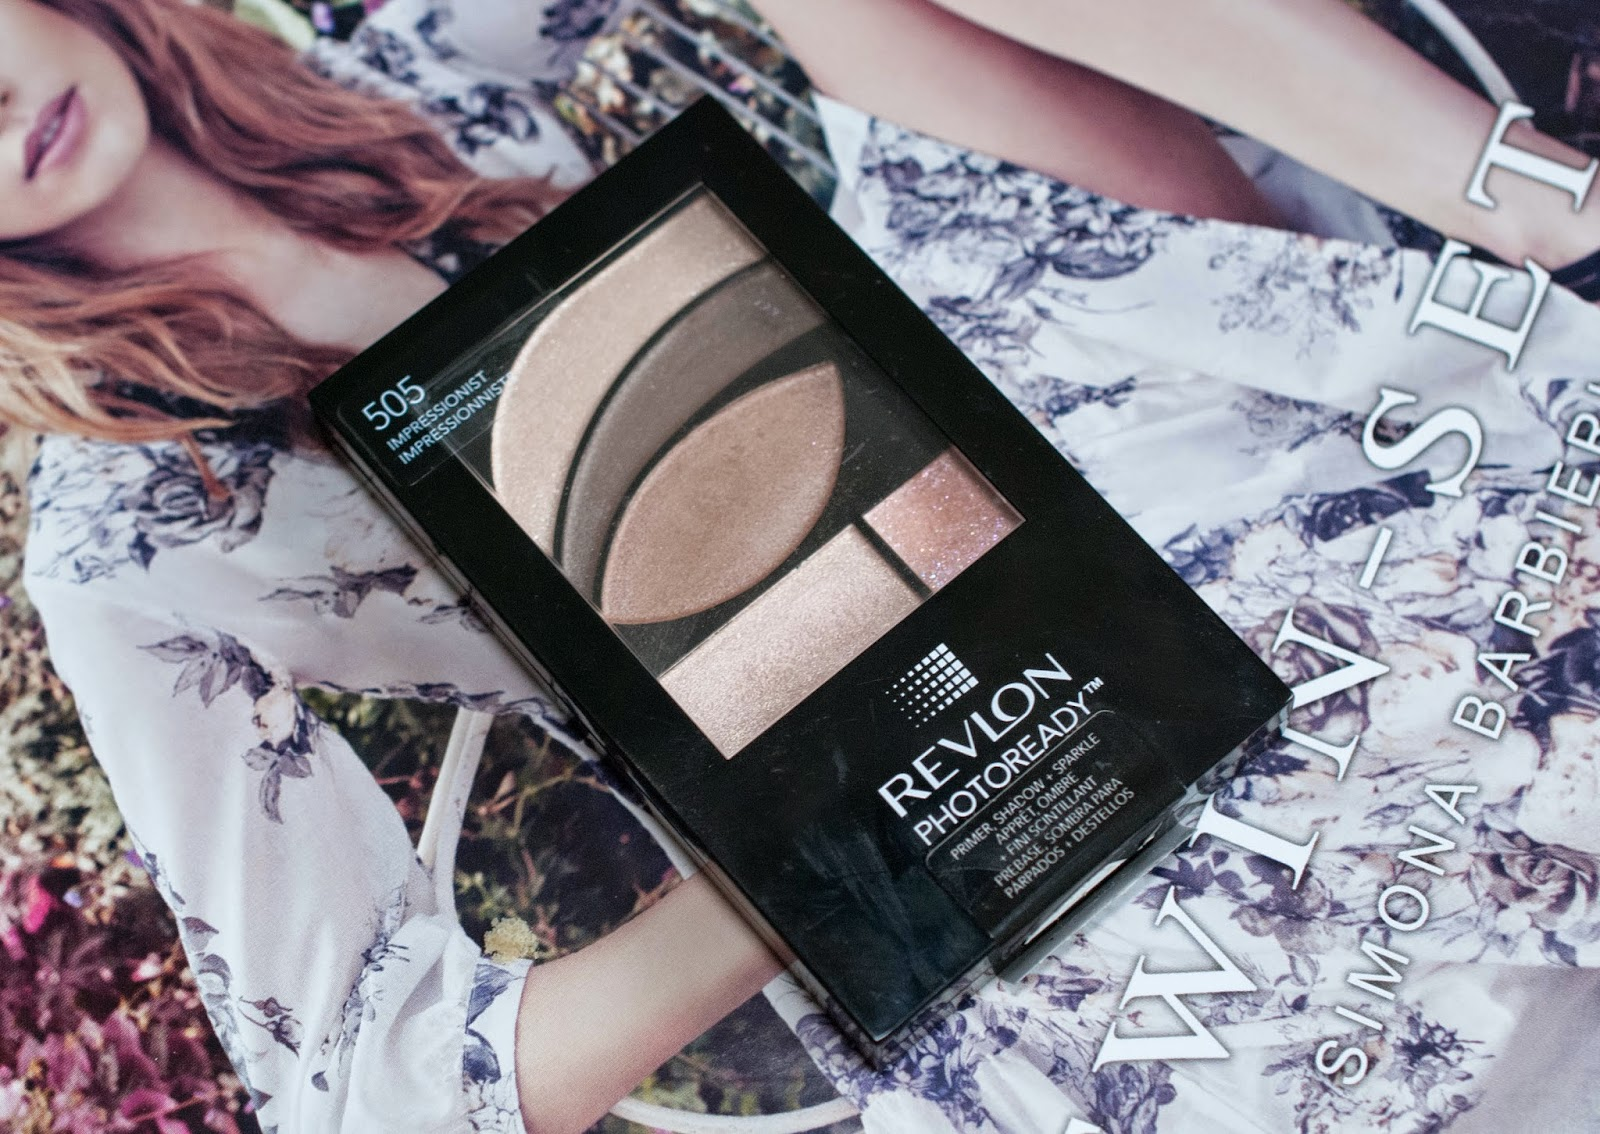 When you are running out of time revlon eyeshadow palette 505 revlon photoready eyeshadow palette in 505 impressionist ccuart Images